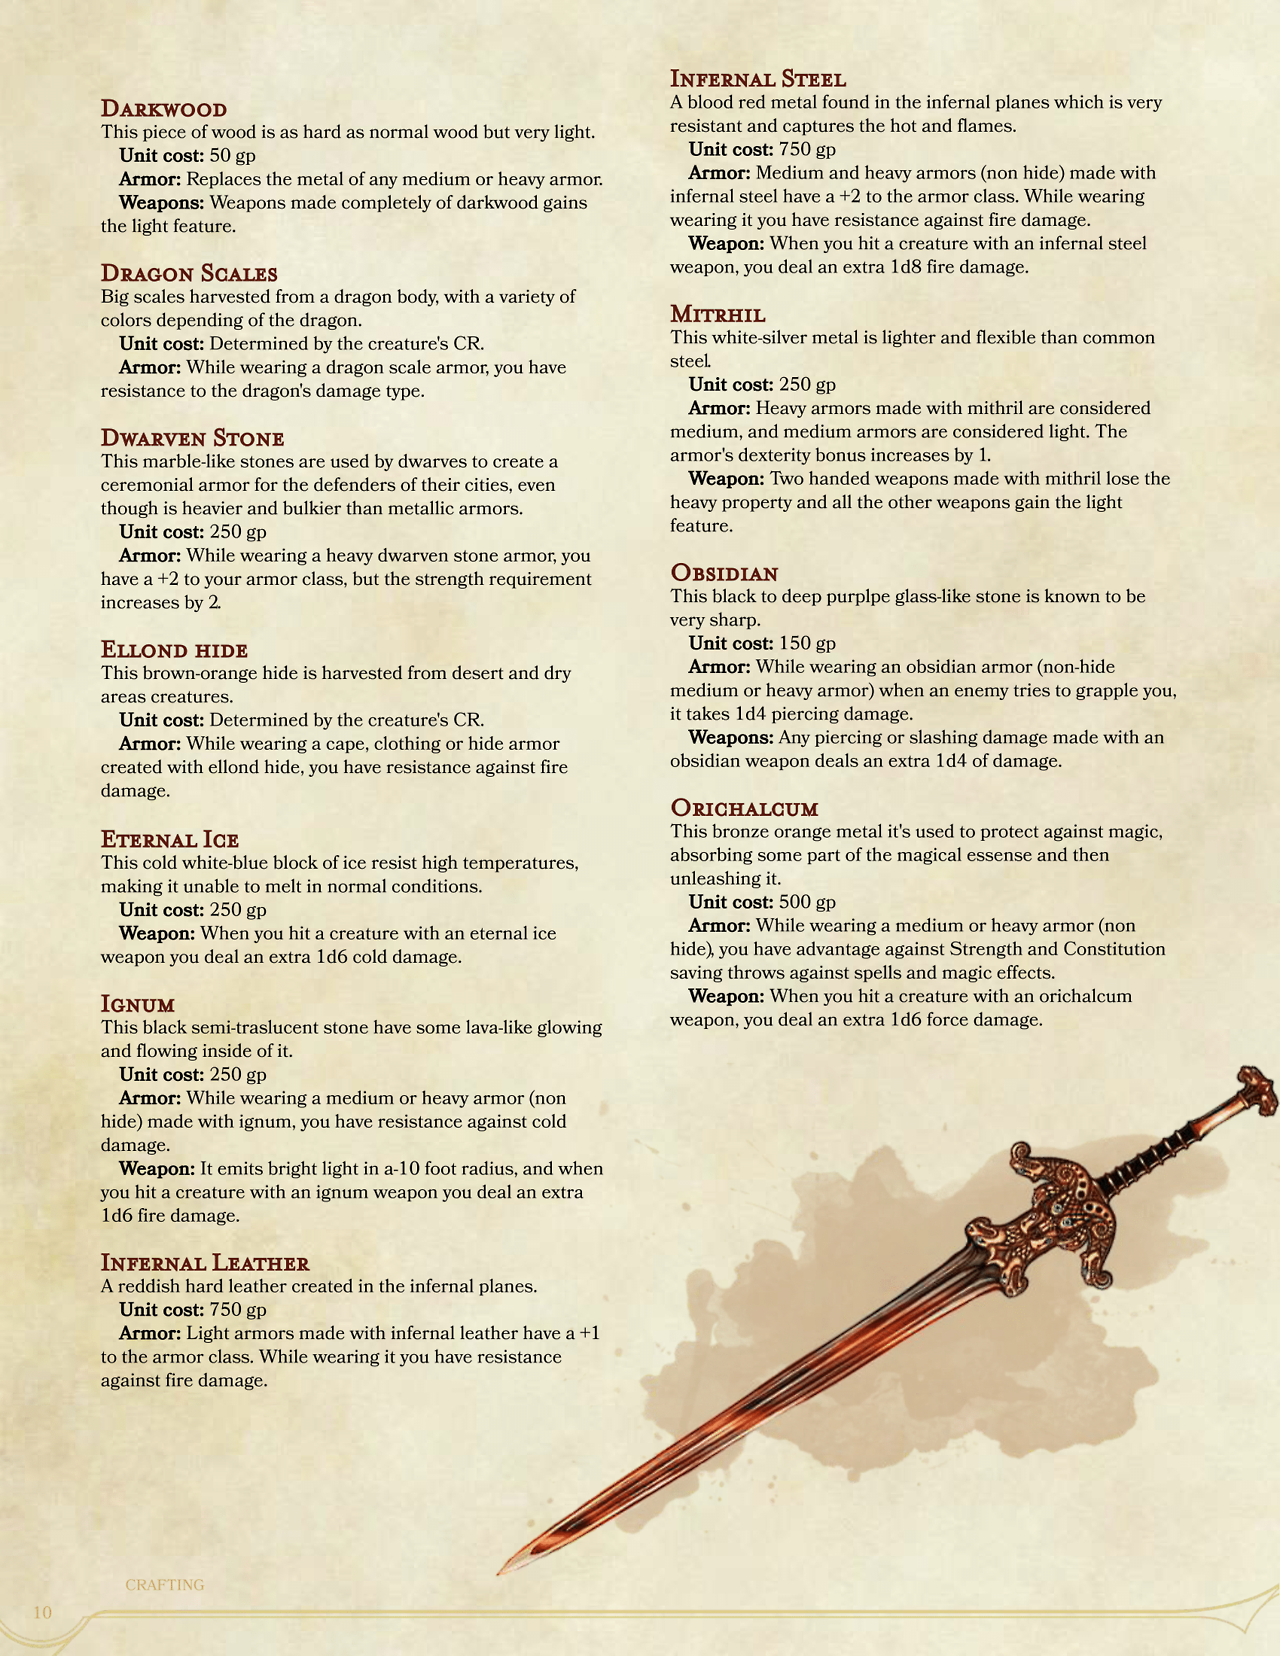 Dnd 5e Homebrew Wilderness Surivival Guide Excerpts Collecting Dnd 5e Homebrew Dnd Dungeons And Dragons Homebrew